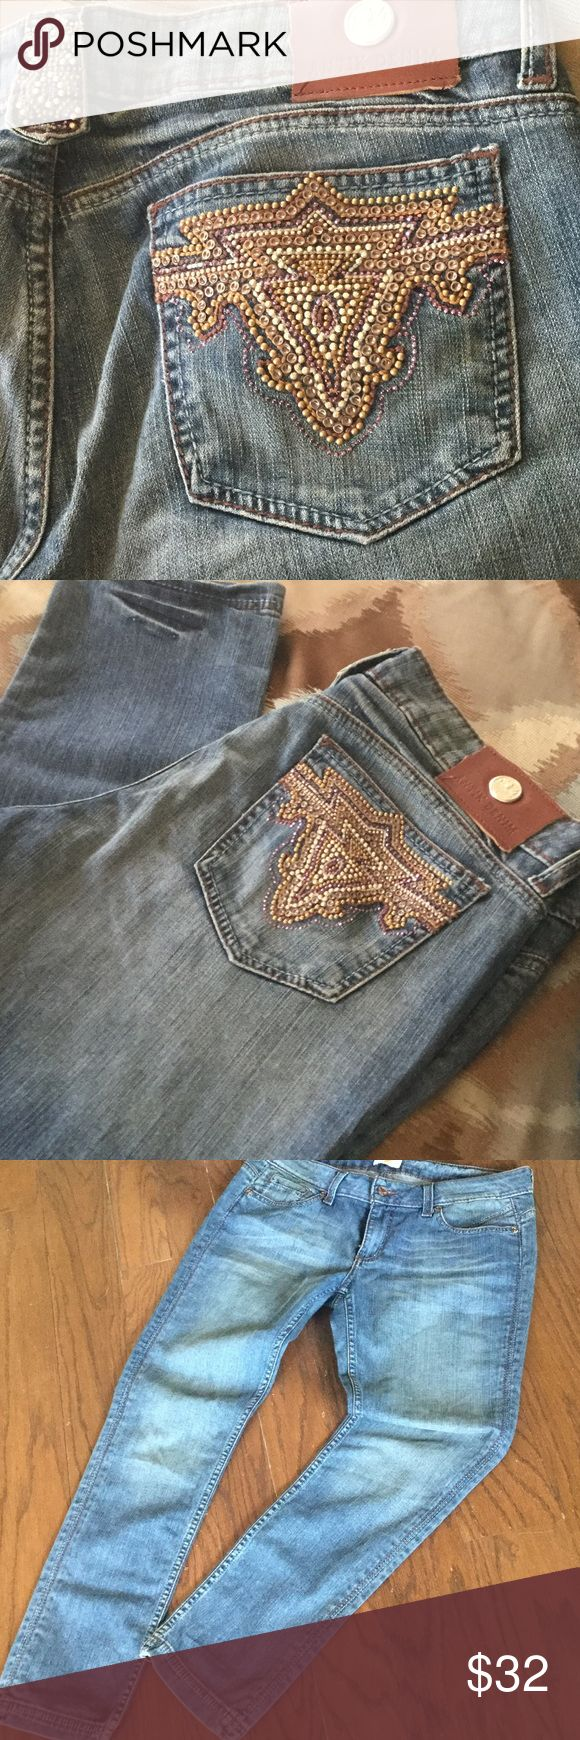 """ANTIK DENIM JEANS! Beautiful bejeweled jeans, with embellished design on the back pocket and belt buckle.  Size 32 with 30"""" inseam, 39"""" Total length. Straight cut.  Denim color closest to pics 1&2.  H070520. Antik Denim Jeans"""